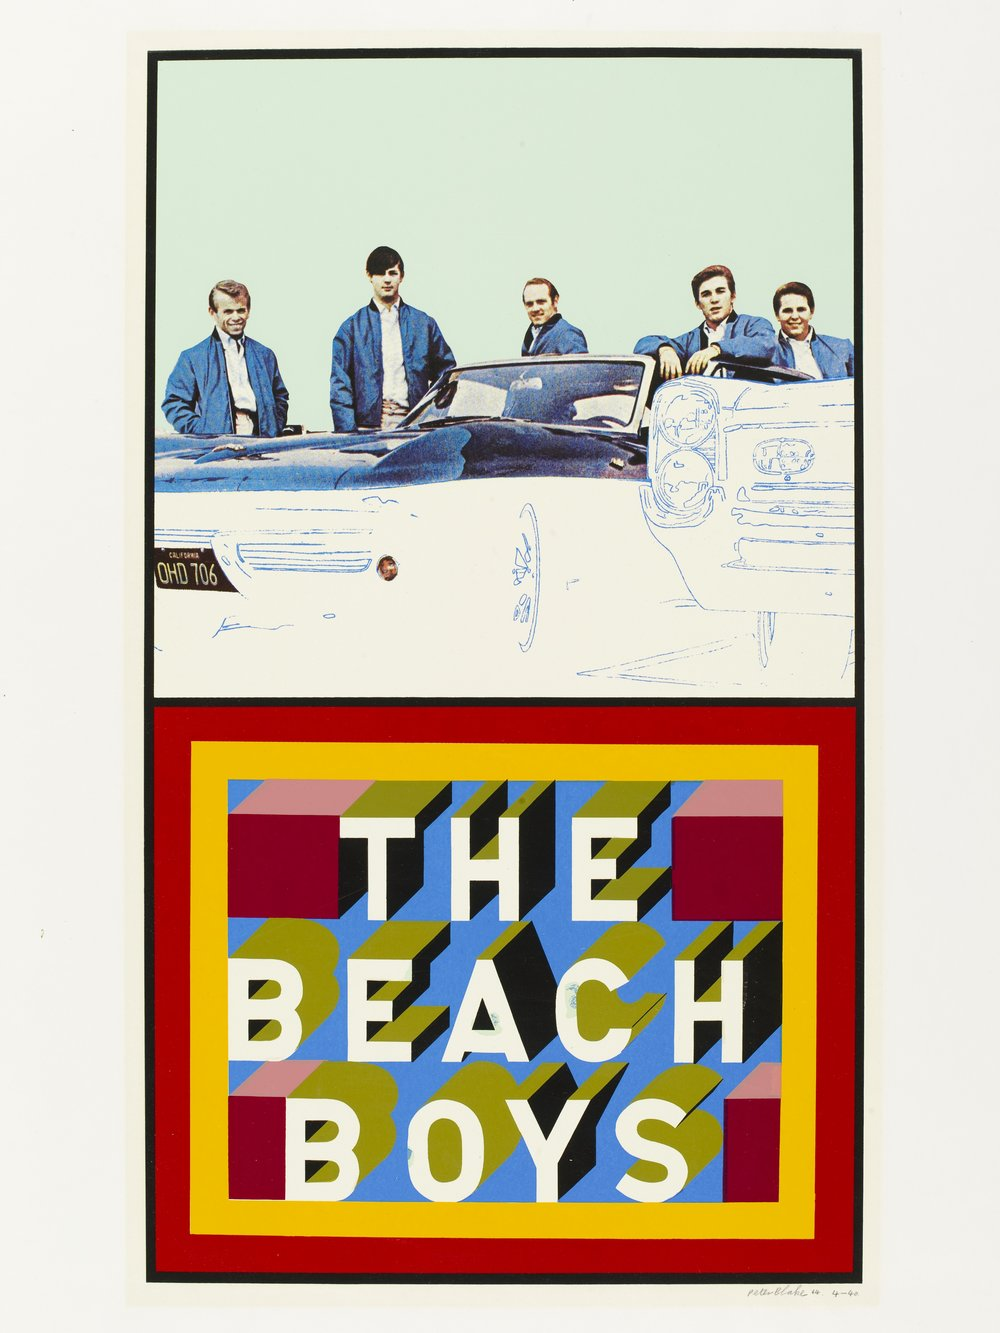 Peter Blake: The Beach Boys, 1964. Screen print | Circ.377-1965 | ©Peter Blake 2016. All rights reserved, DACS